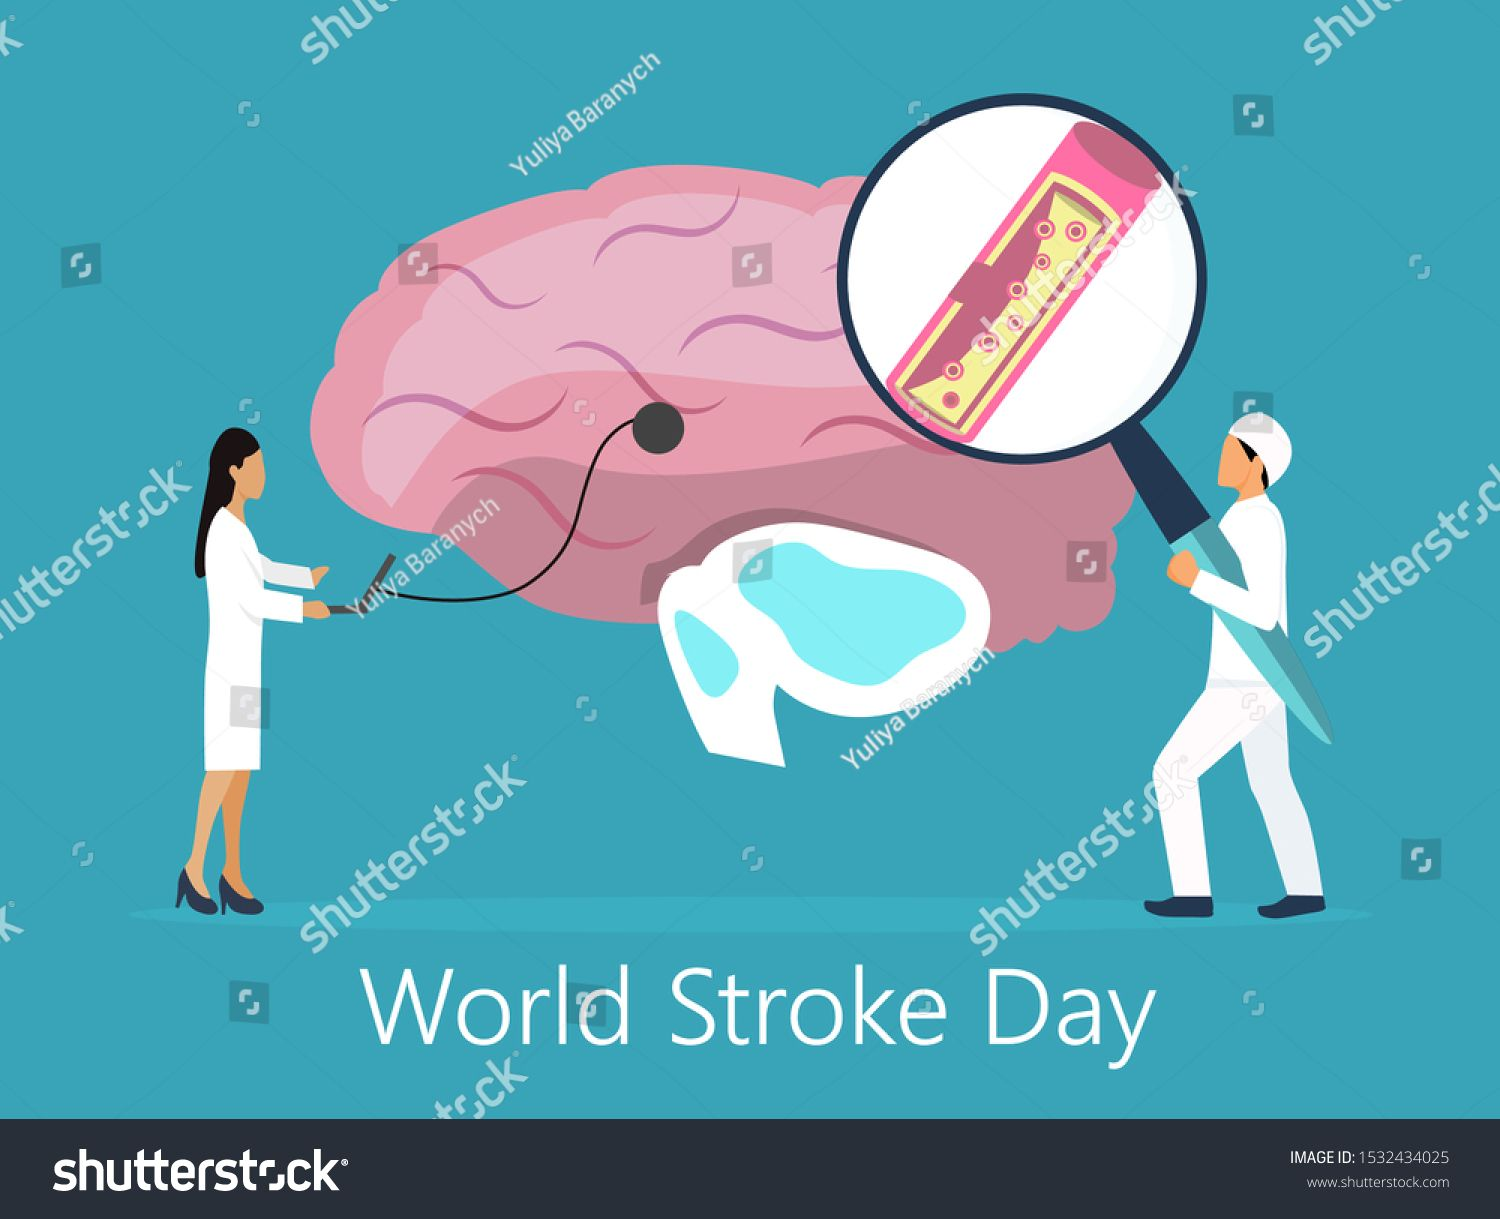 World Stroke Day Vector Logo Poster Stock Vector Royalty Free 1539080405 World Stroke Day Vector Logo Poster Illustr In 2020 World Stroke Day Vector Logo Poster